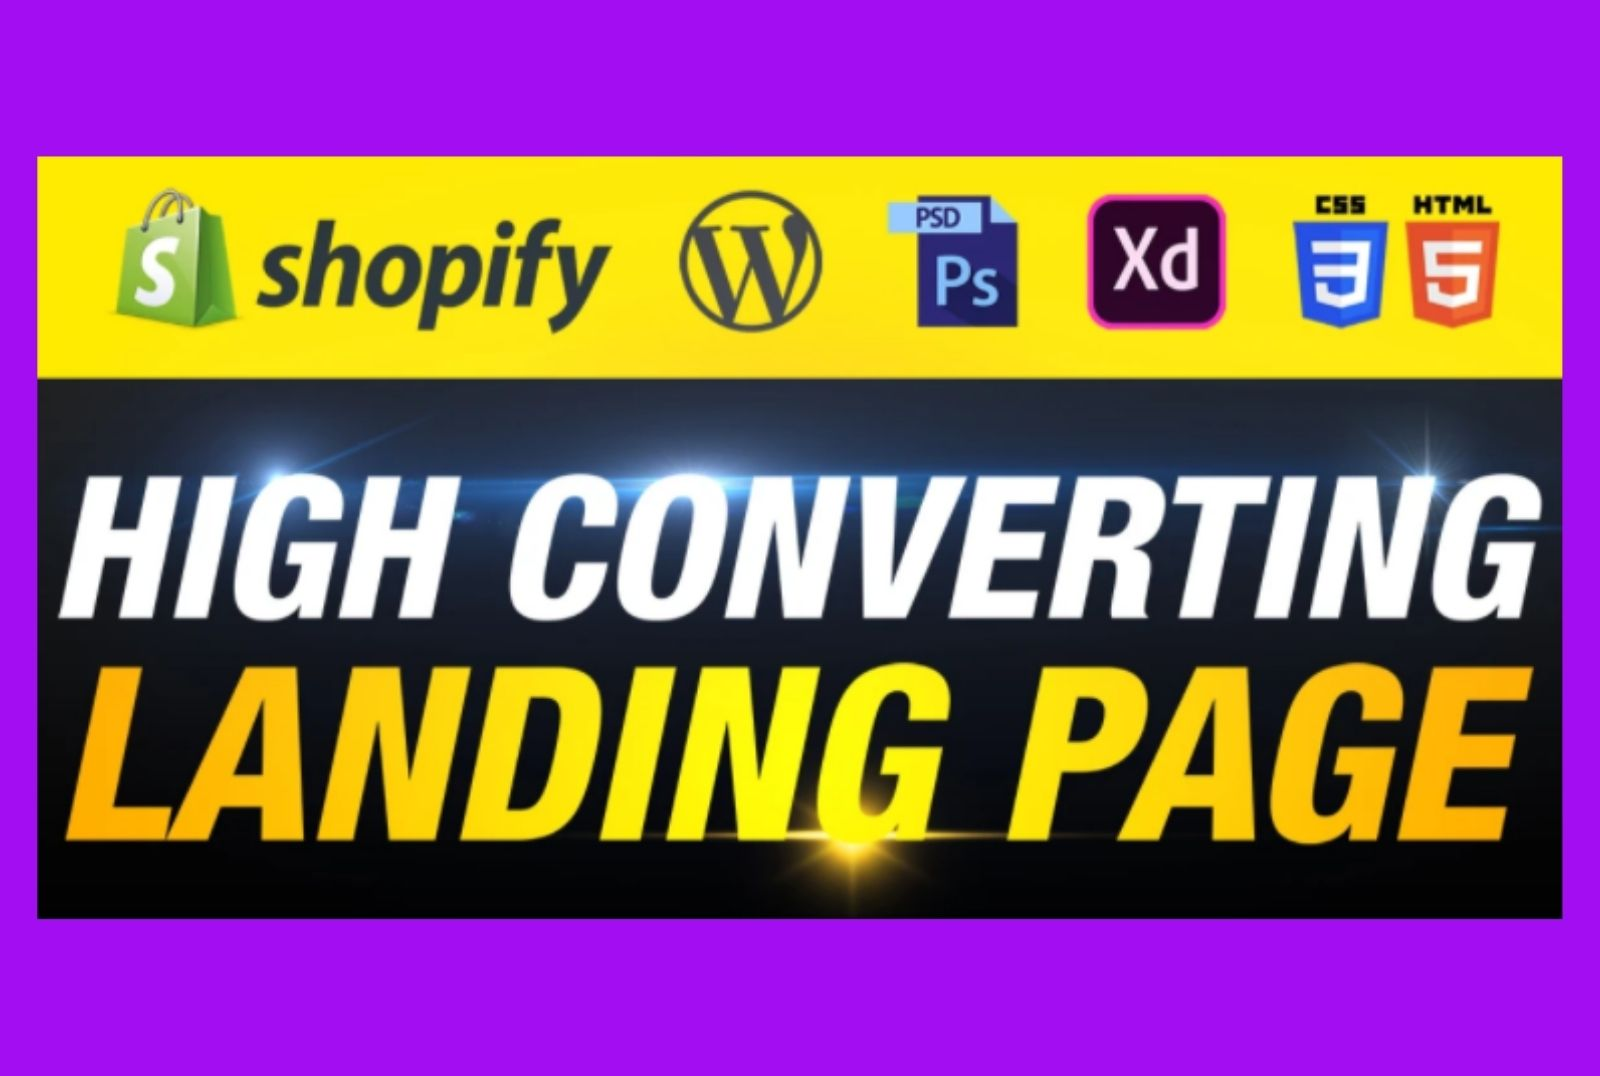 I will design attractive landing page using shopify or wordpress